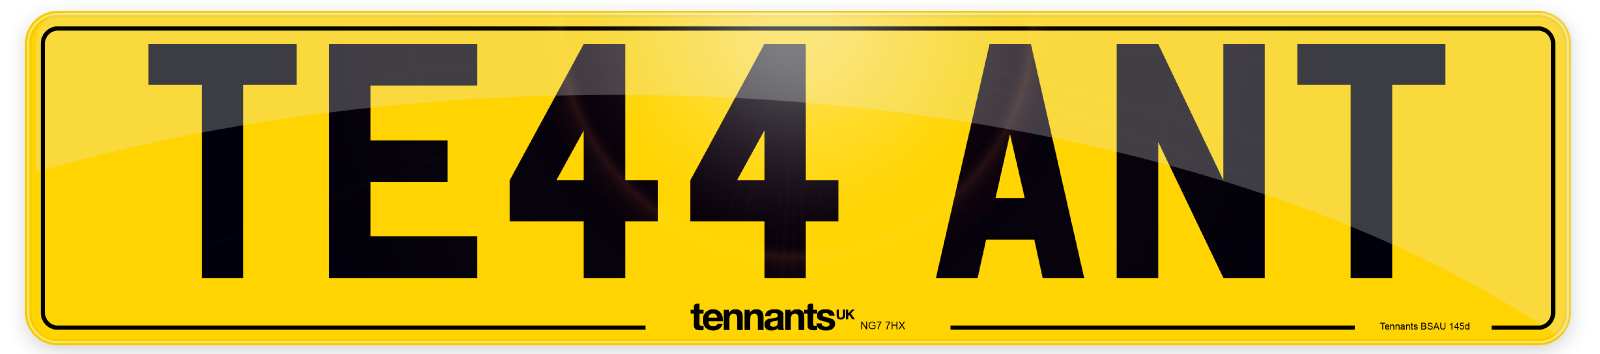 Our Standard number plates